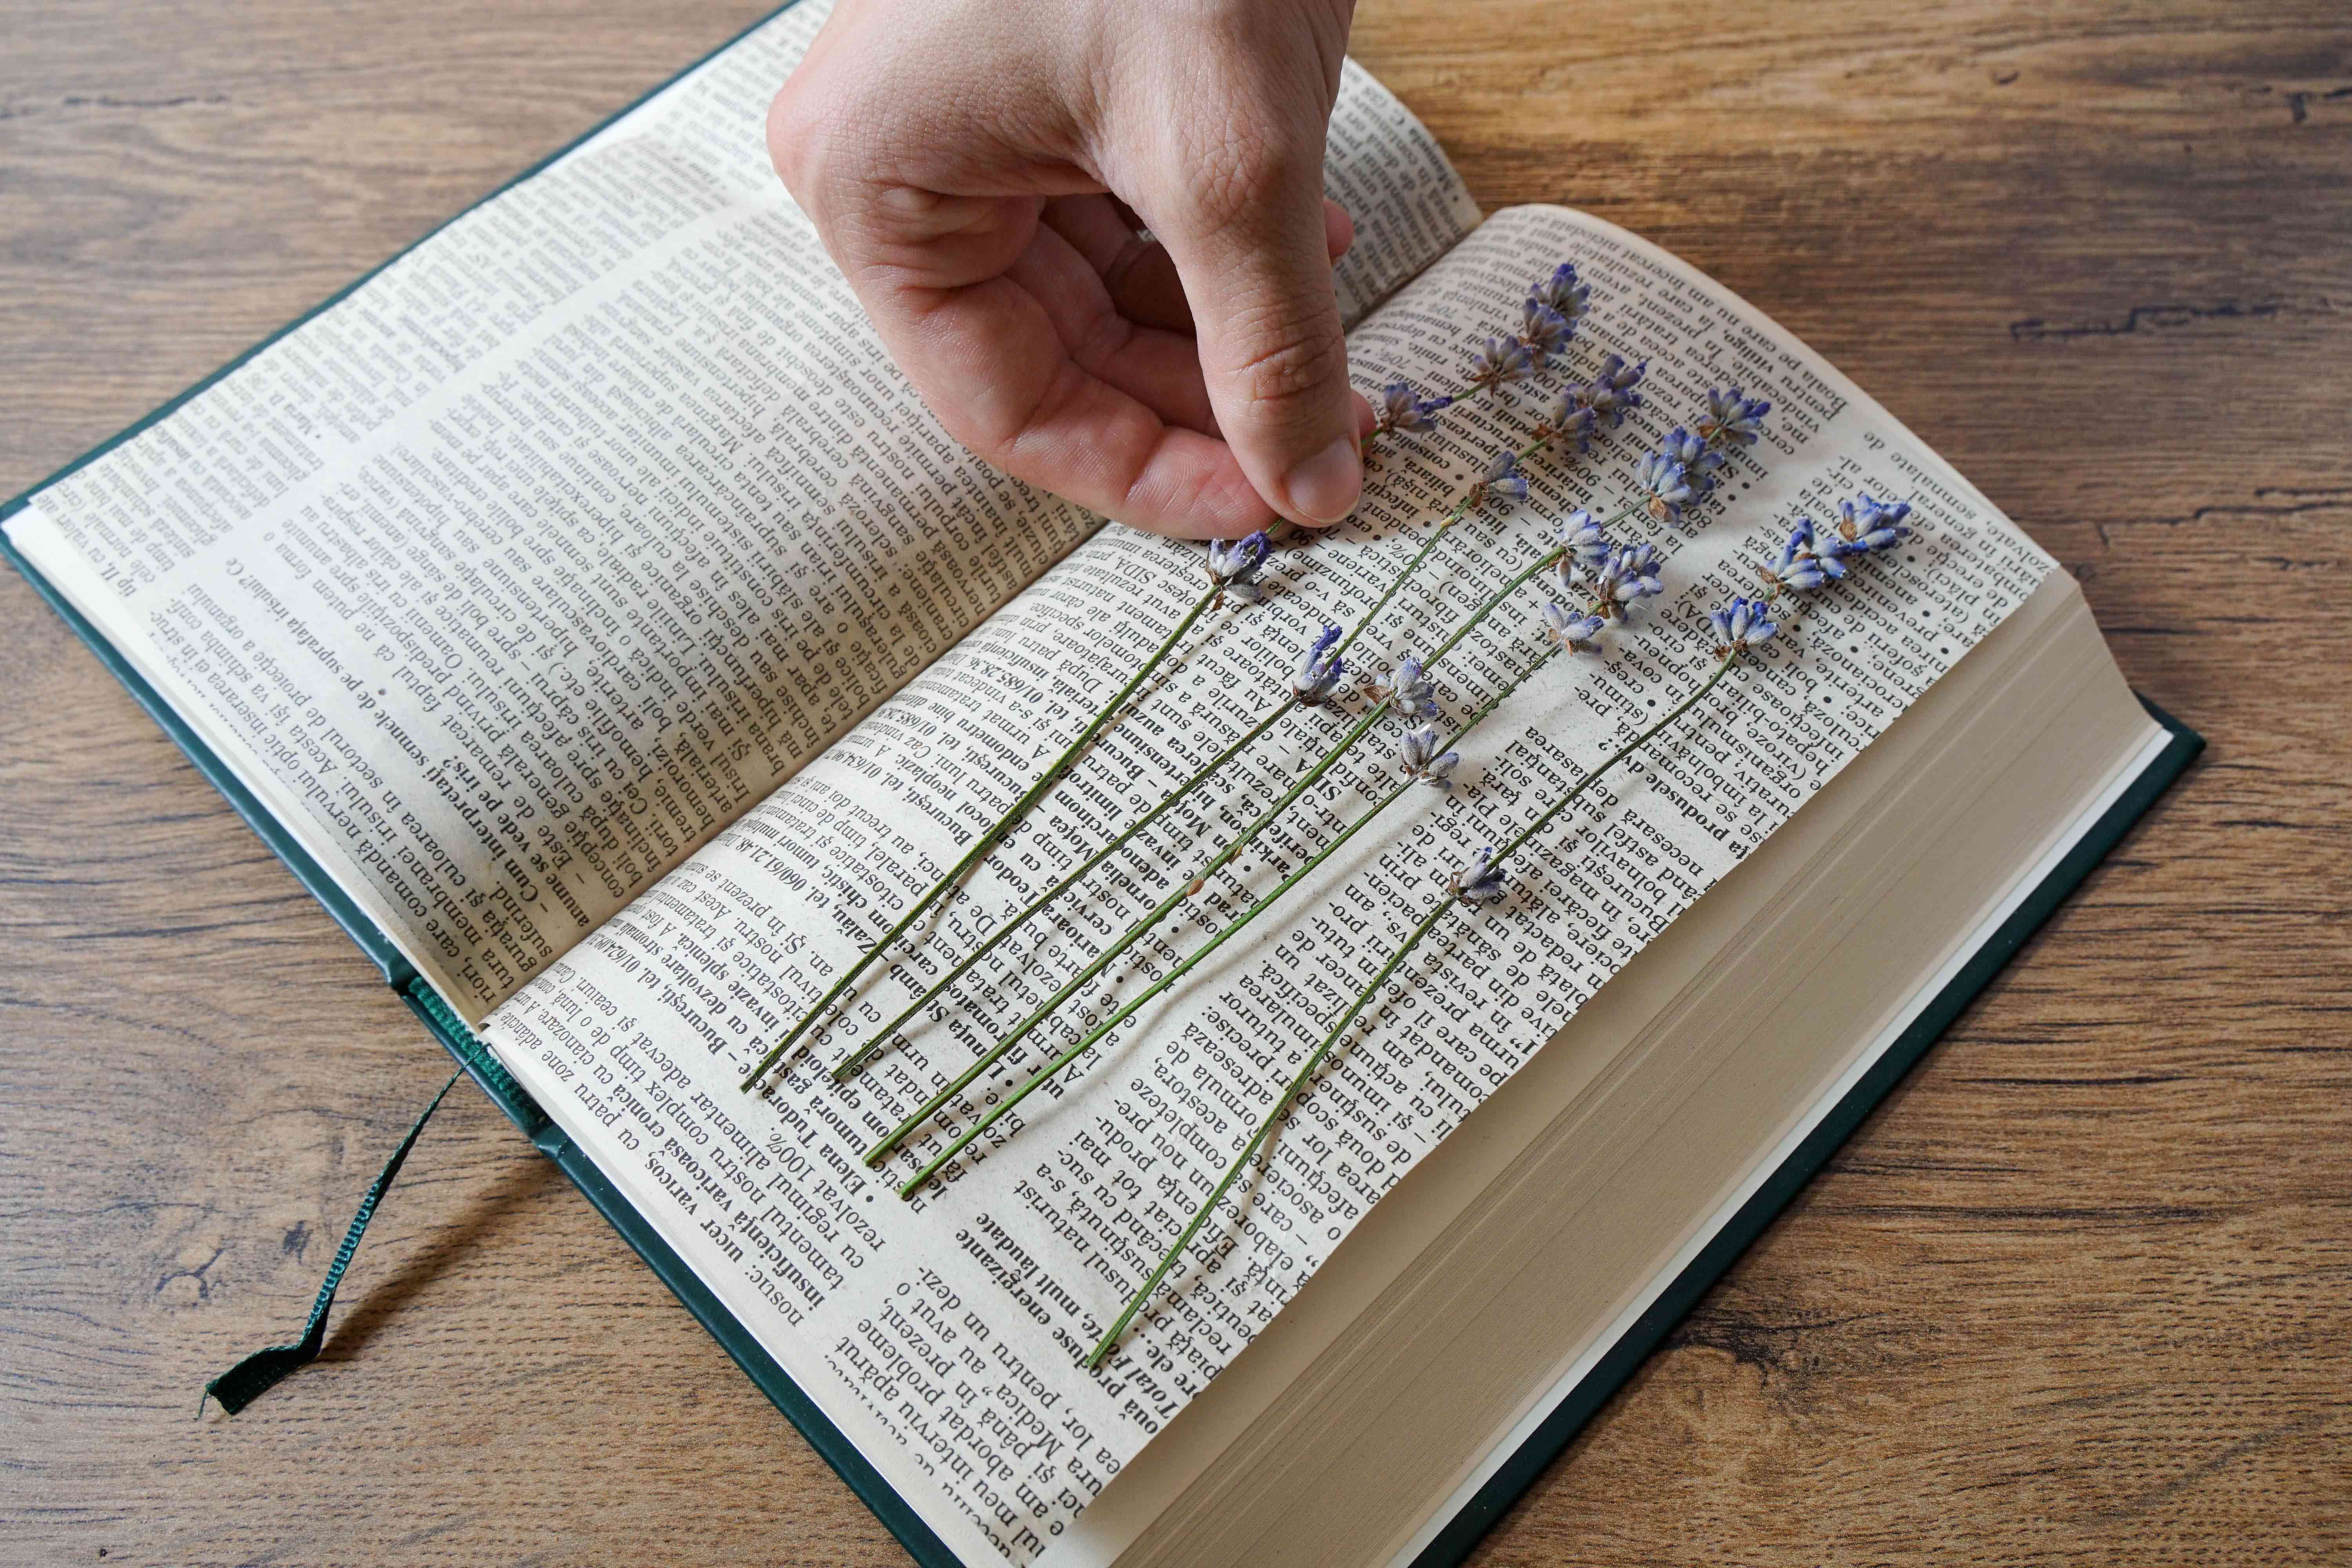 hand places lavender sprig in open book